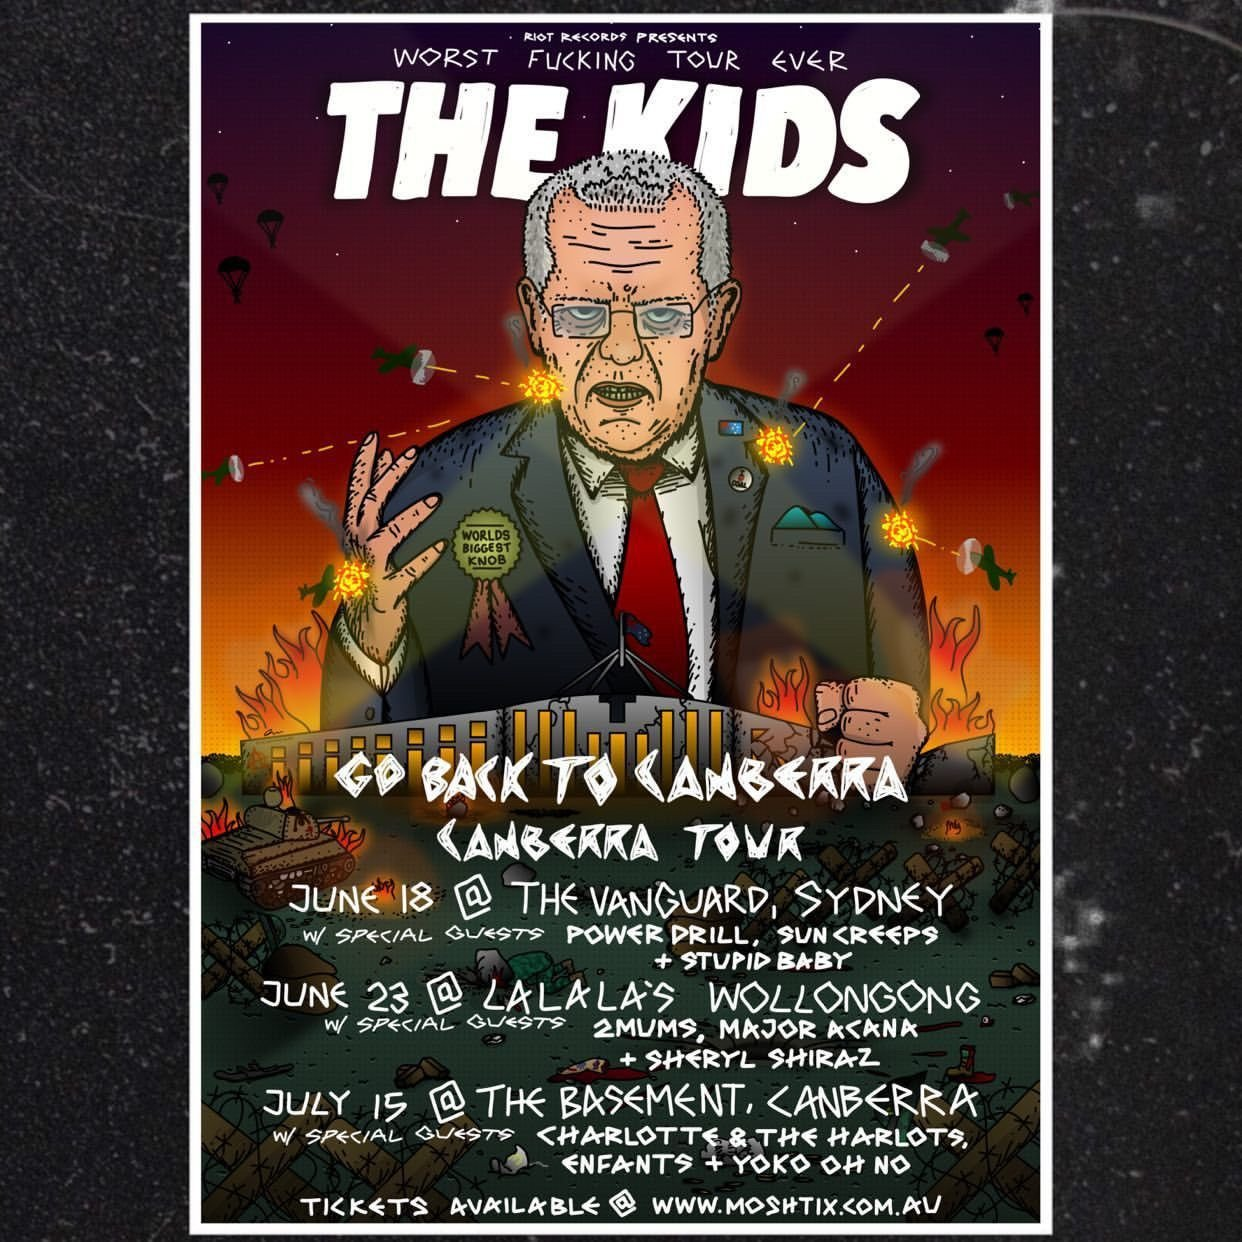 The Kids Go Back To Canberra Tour